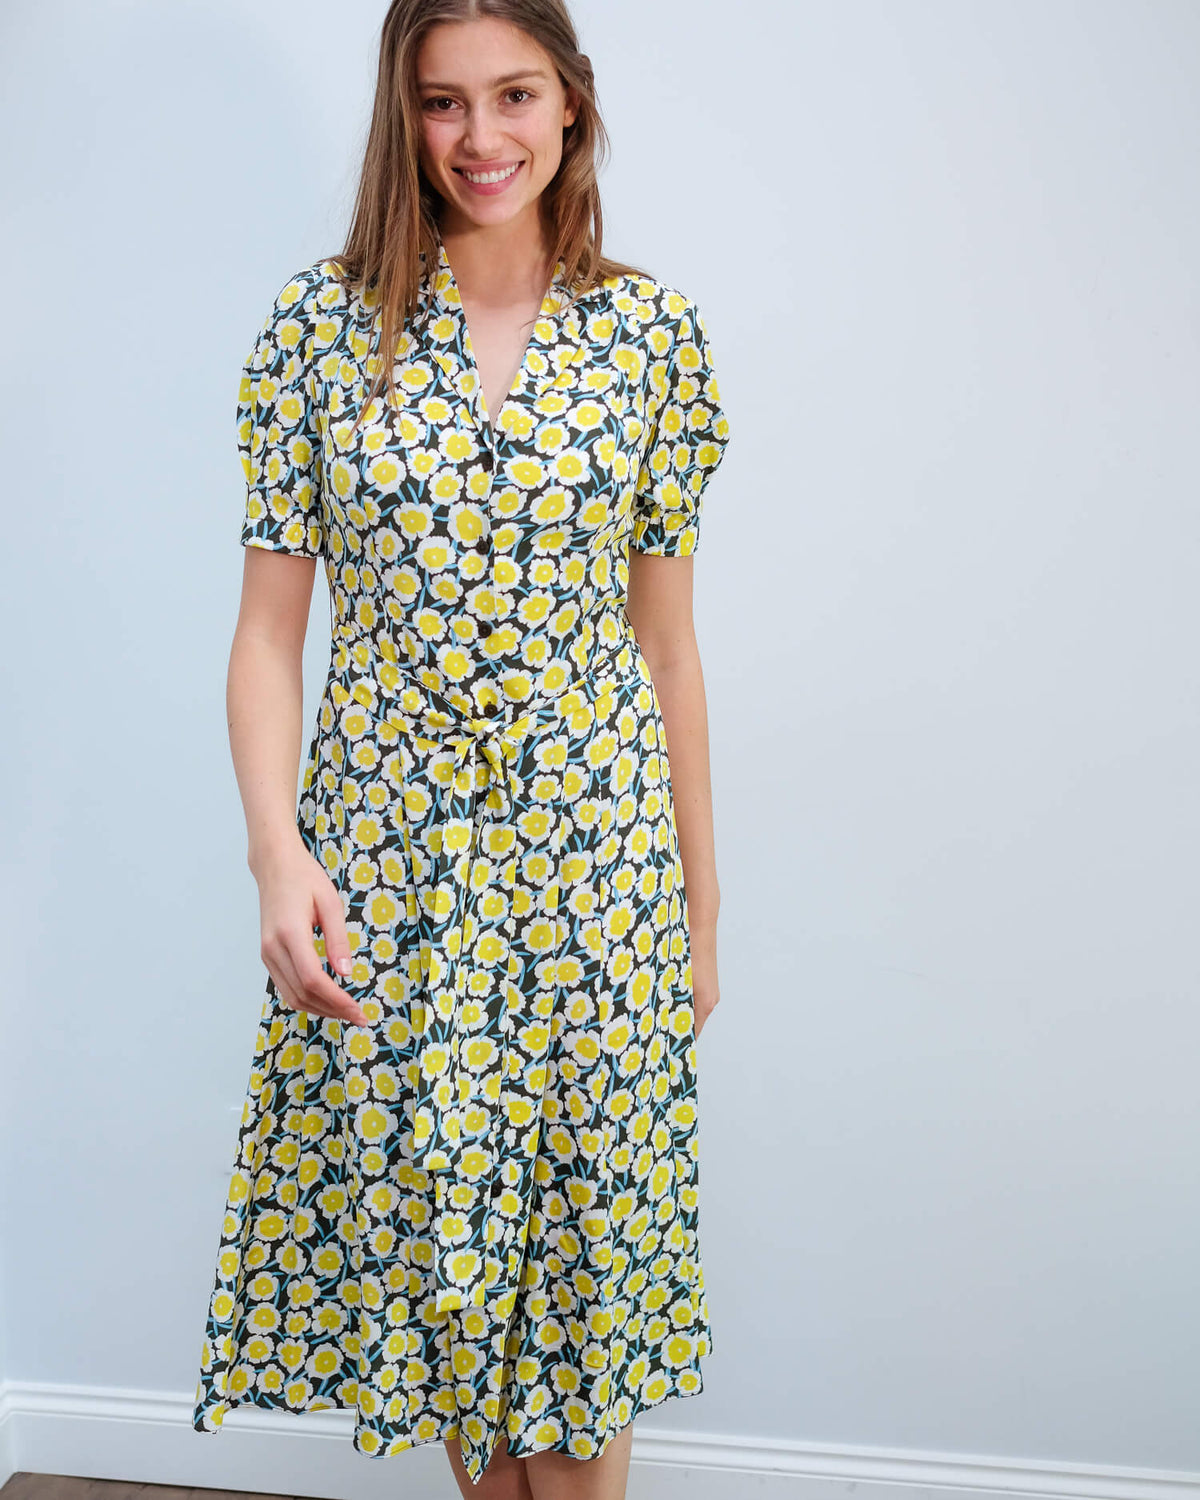 DVF Lily dress in daisies canteen